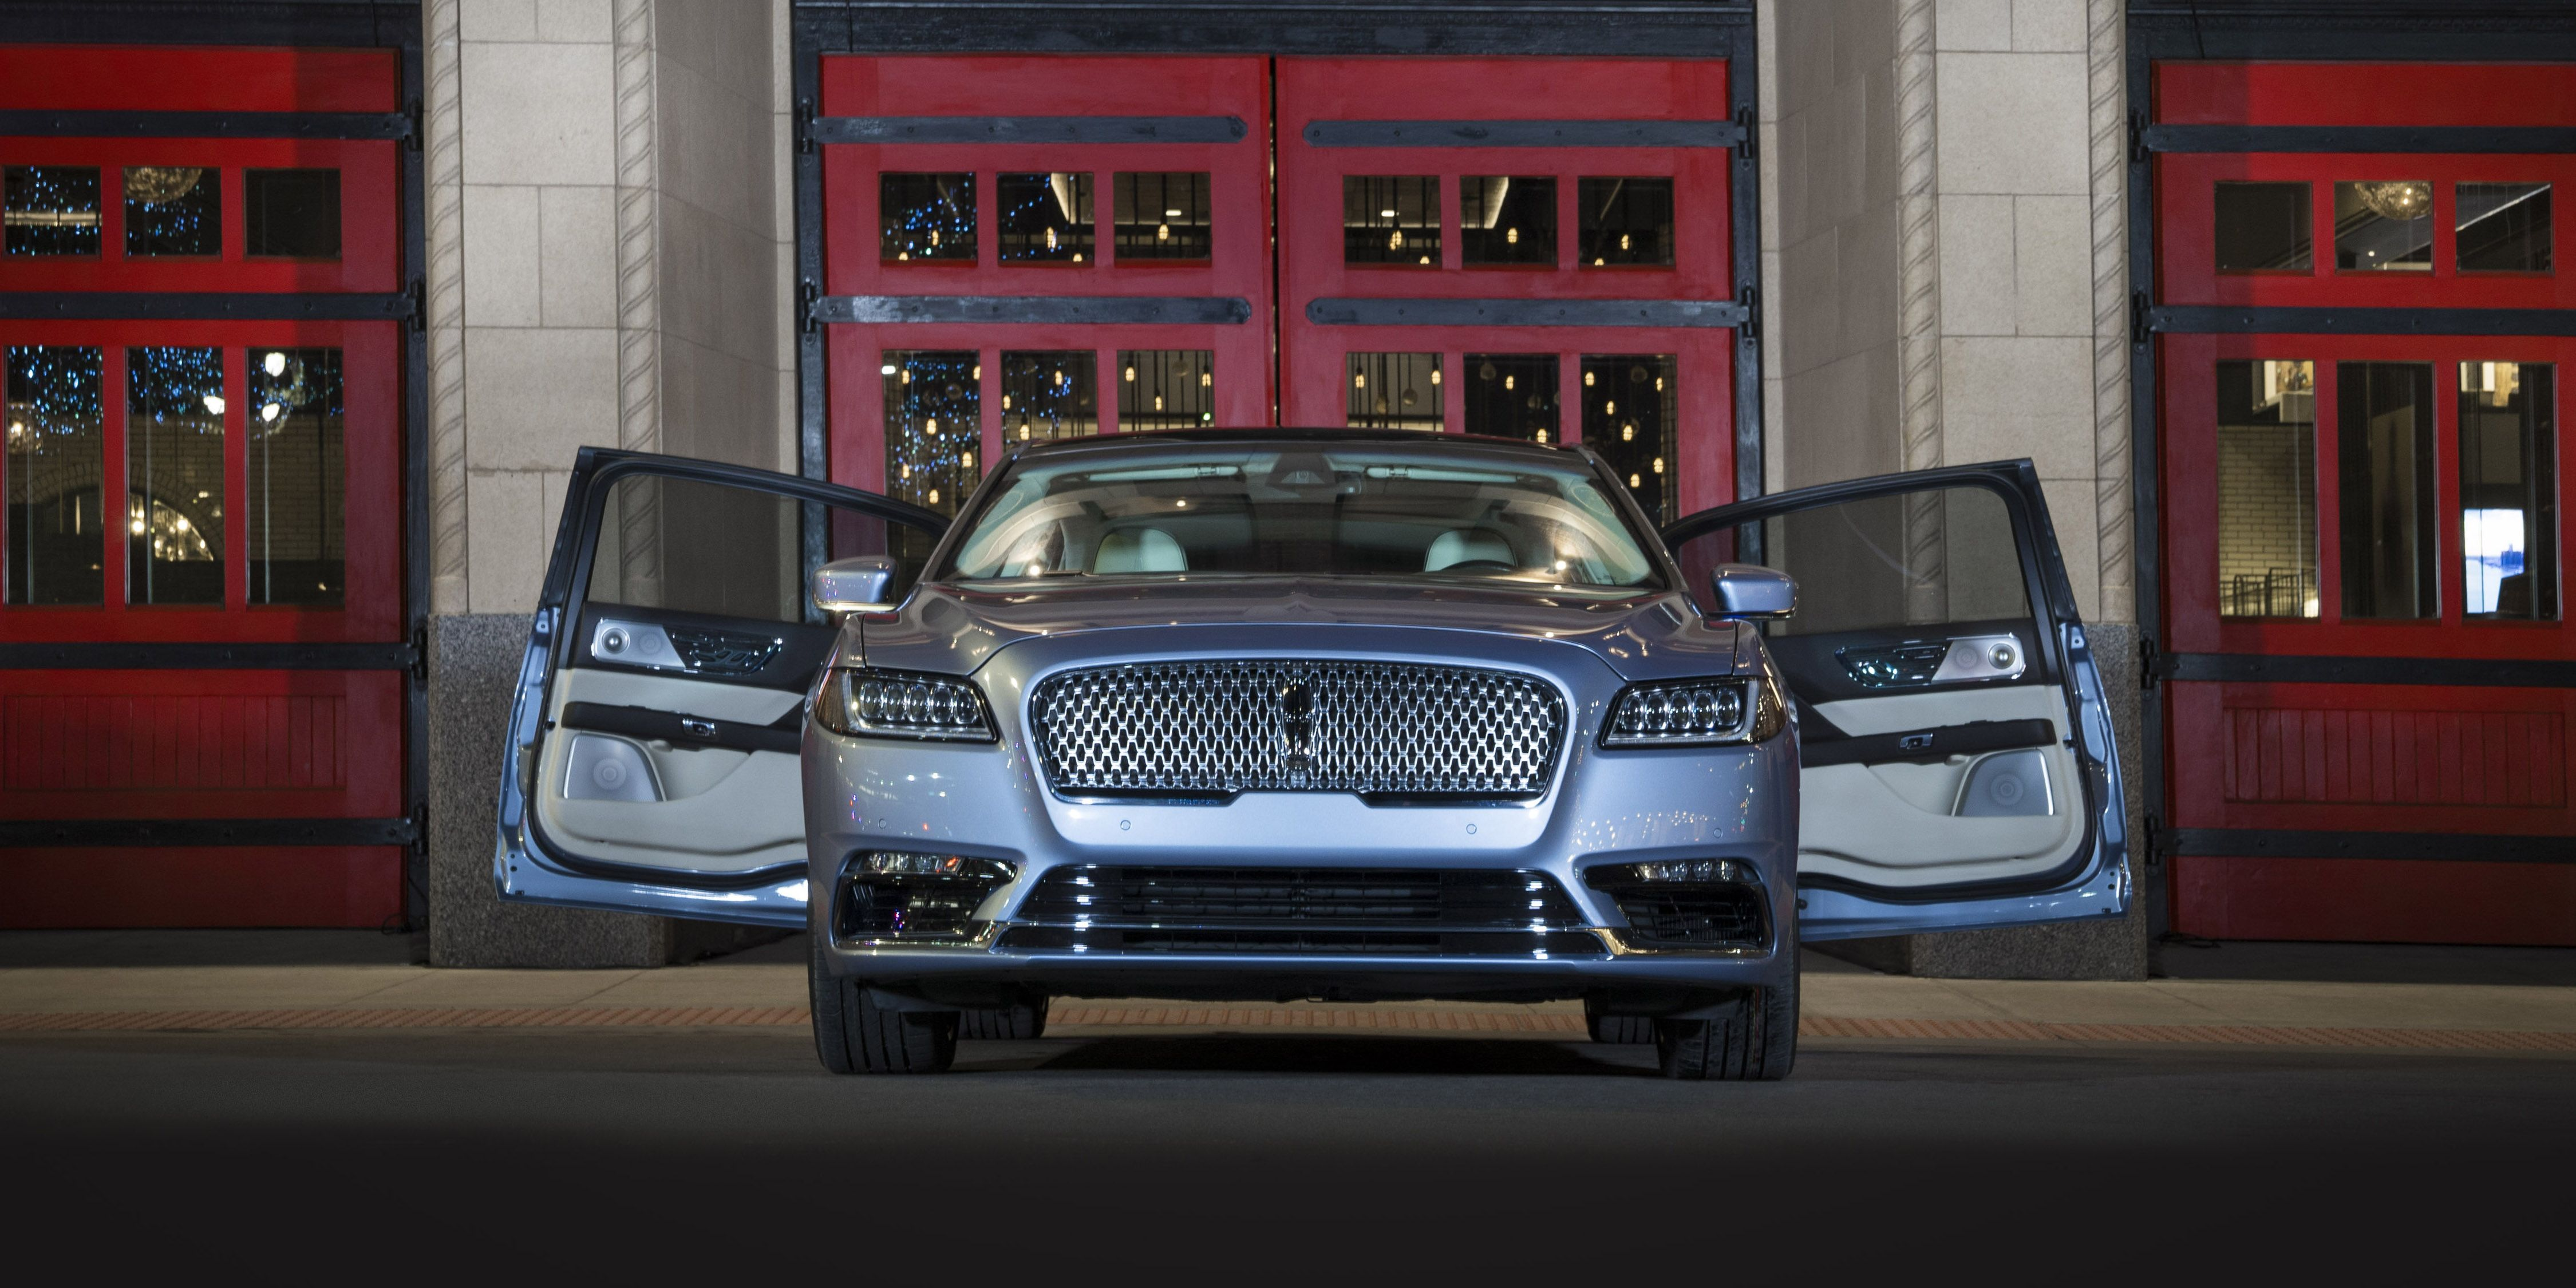 2019 Lincoln Continental Suicide Doors Coach Doors On Lincoln Sedan